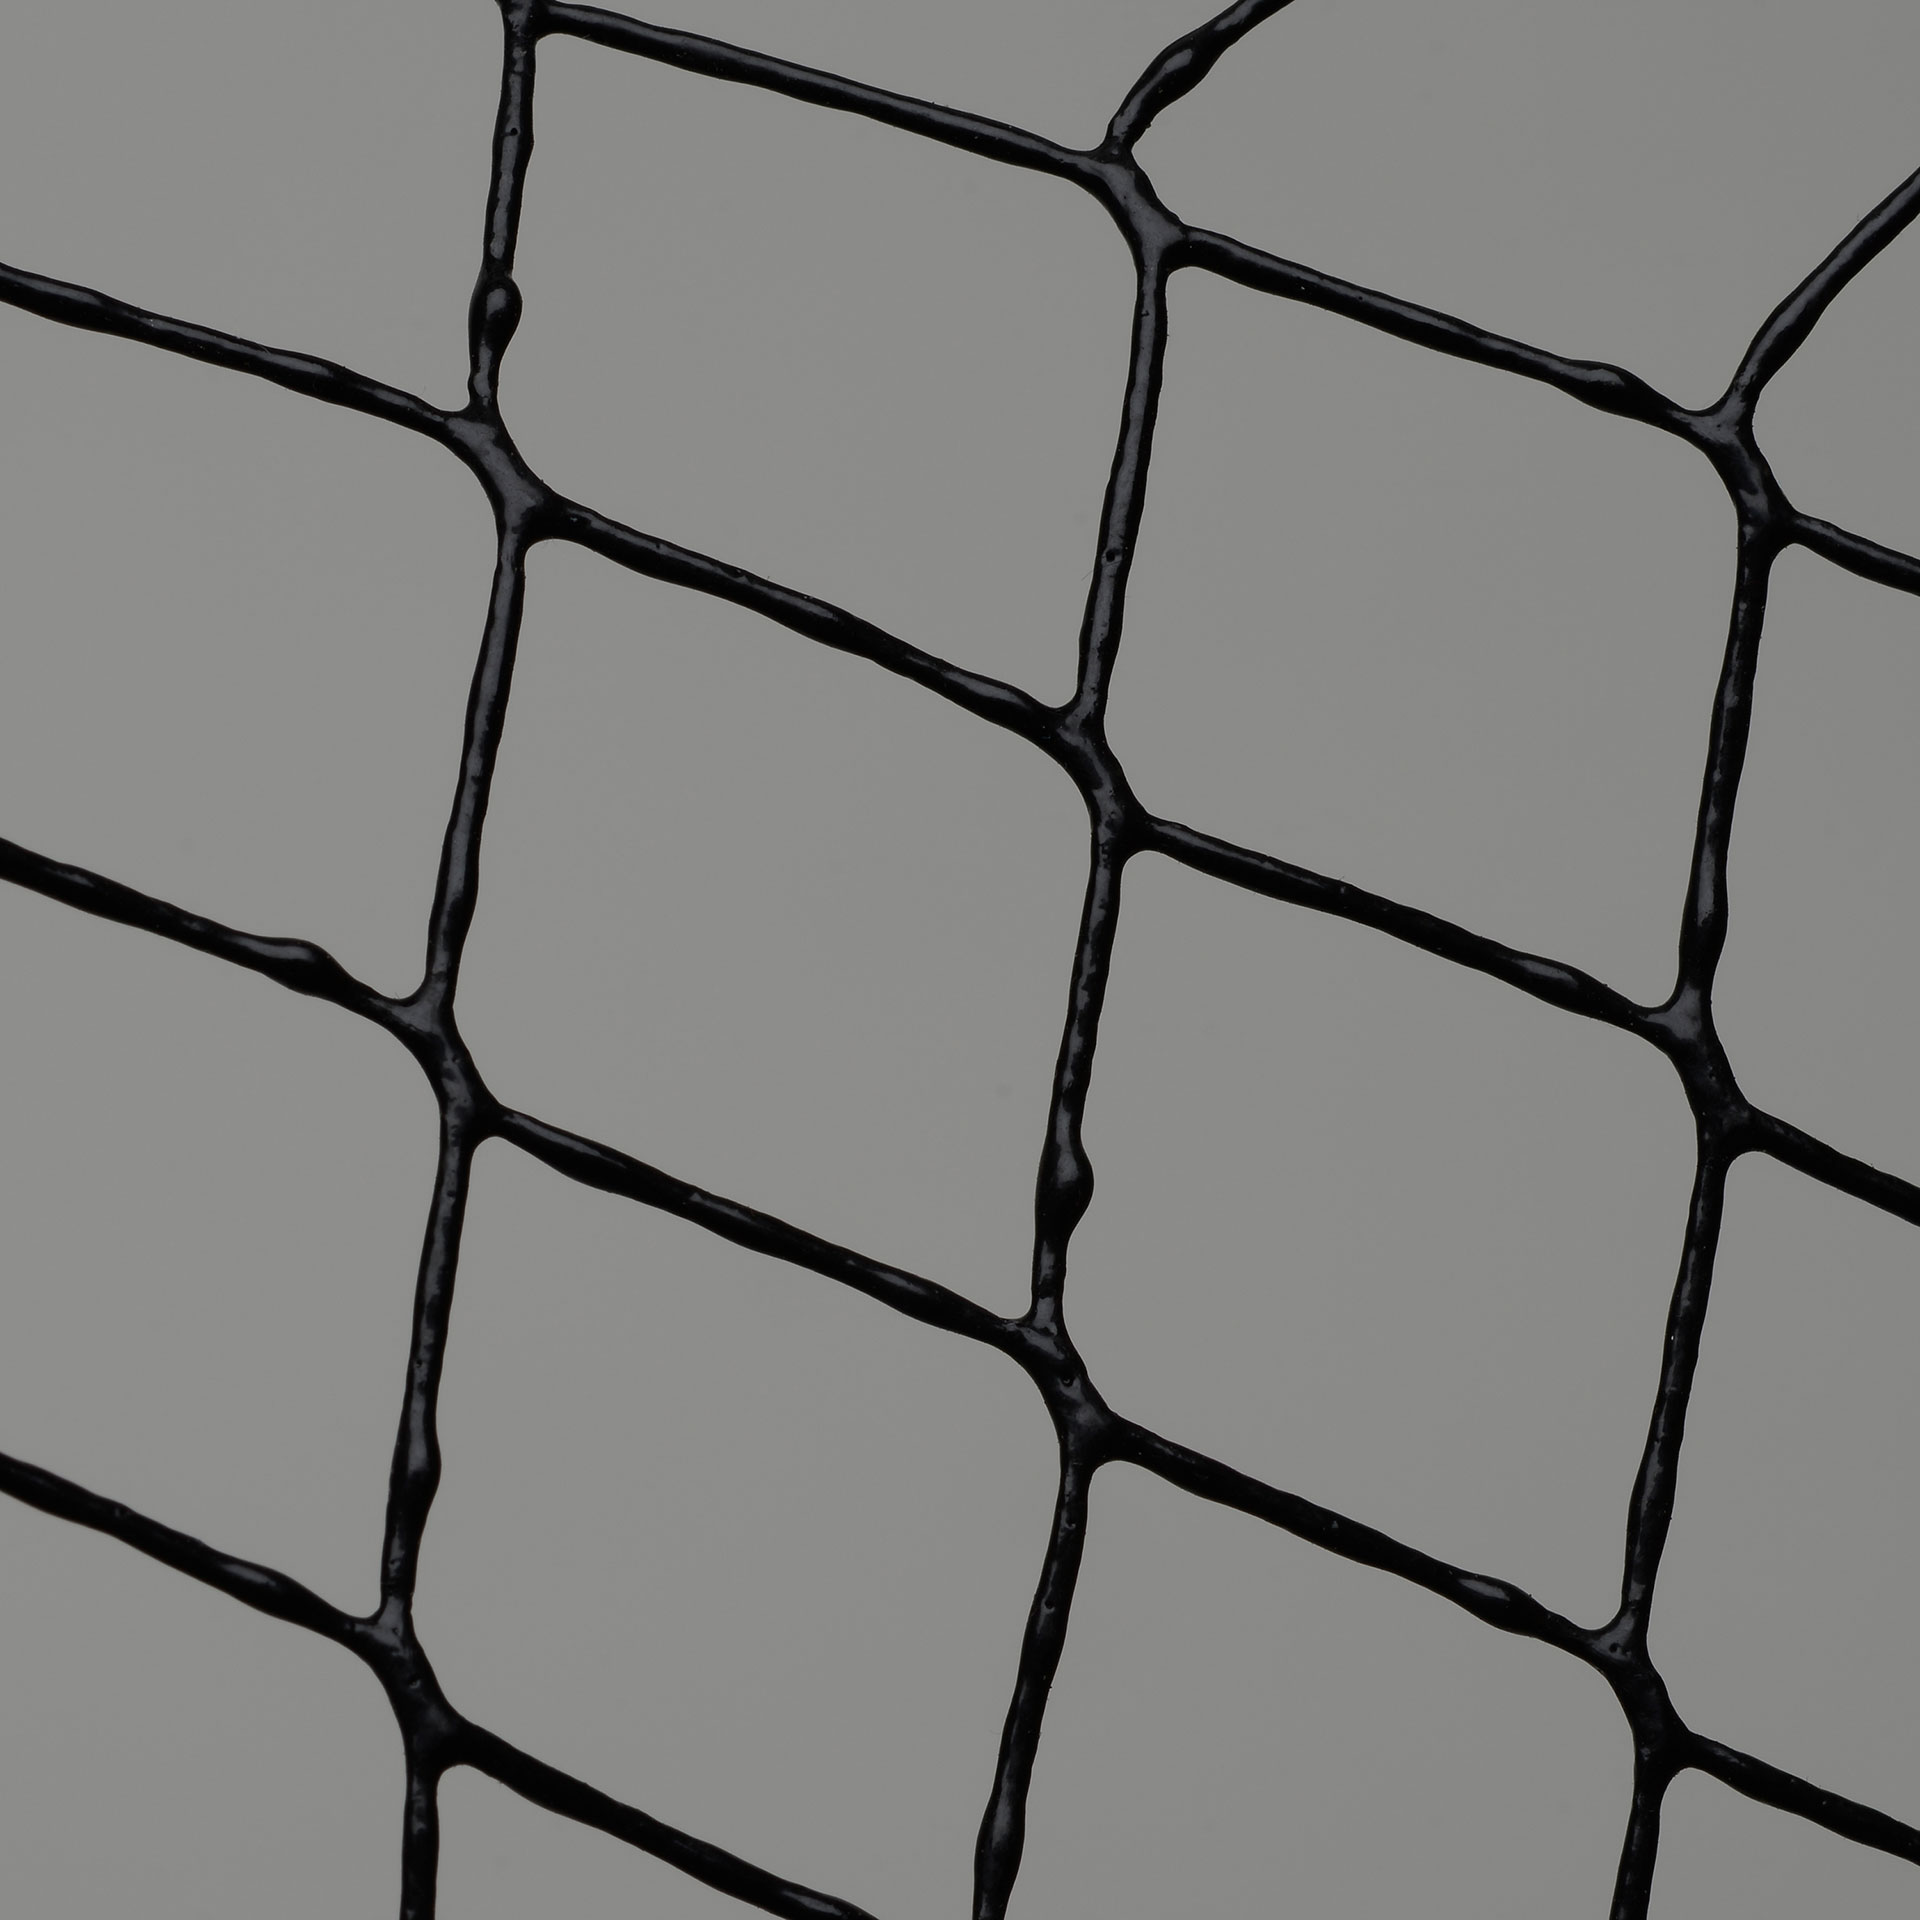 Coated Netting